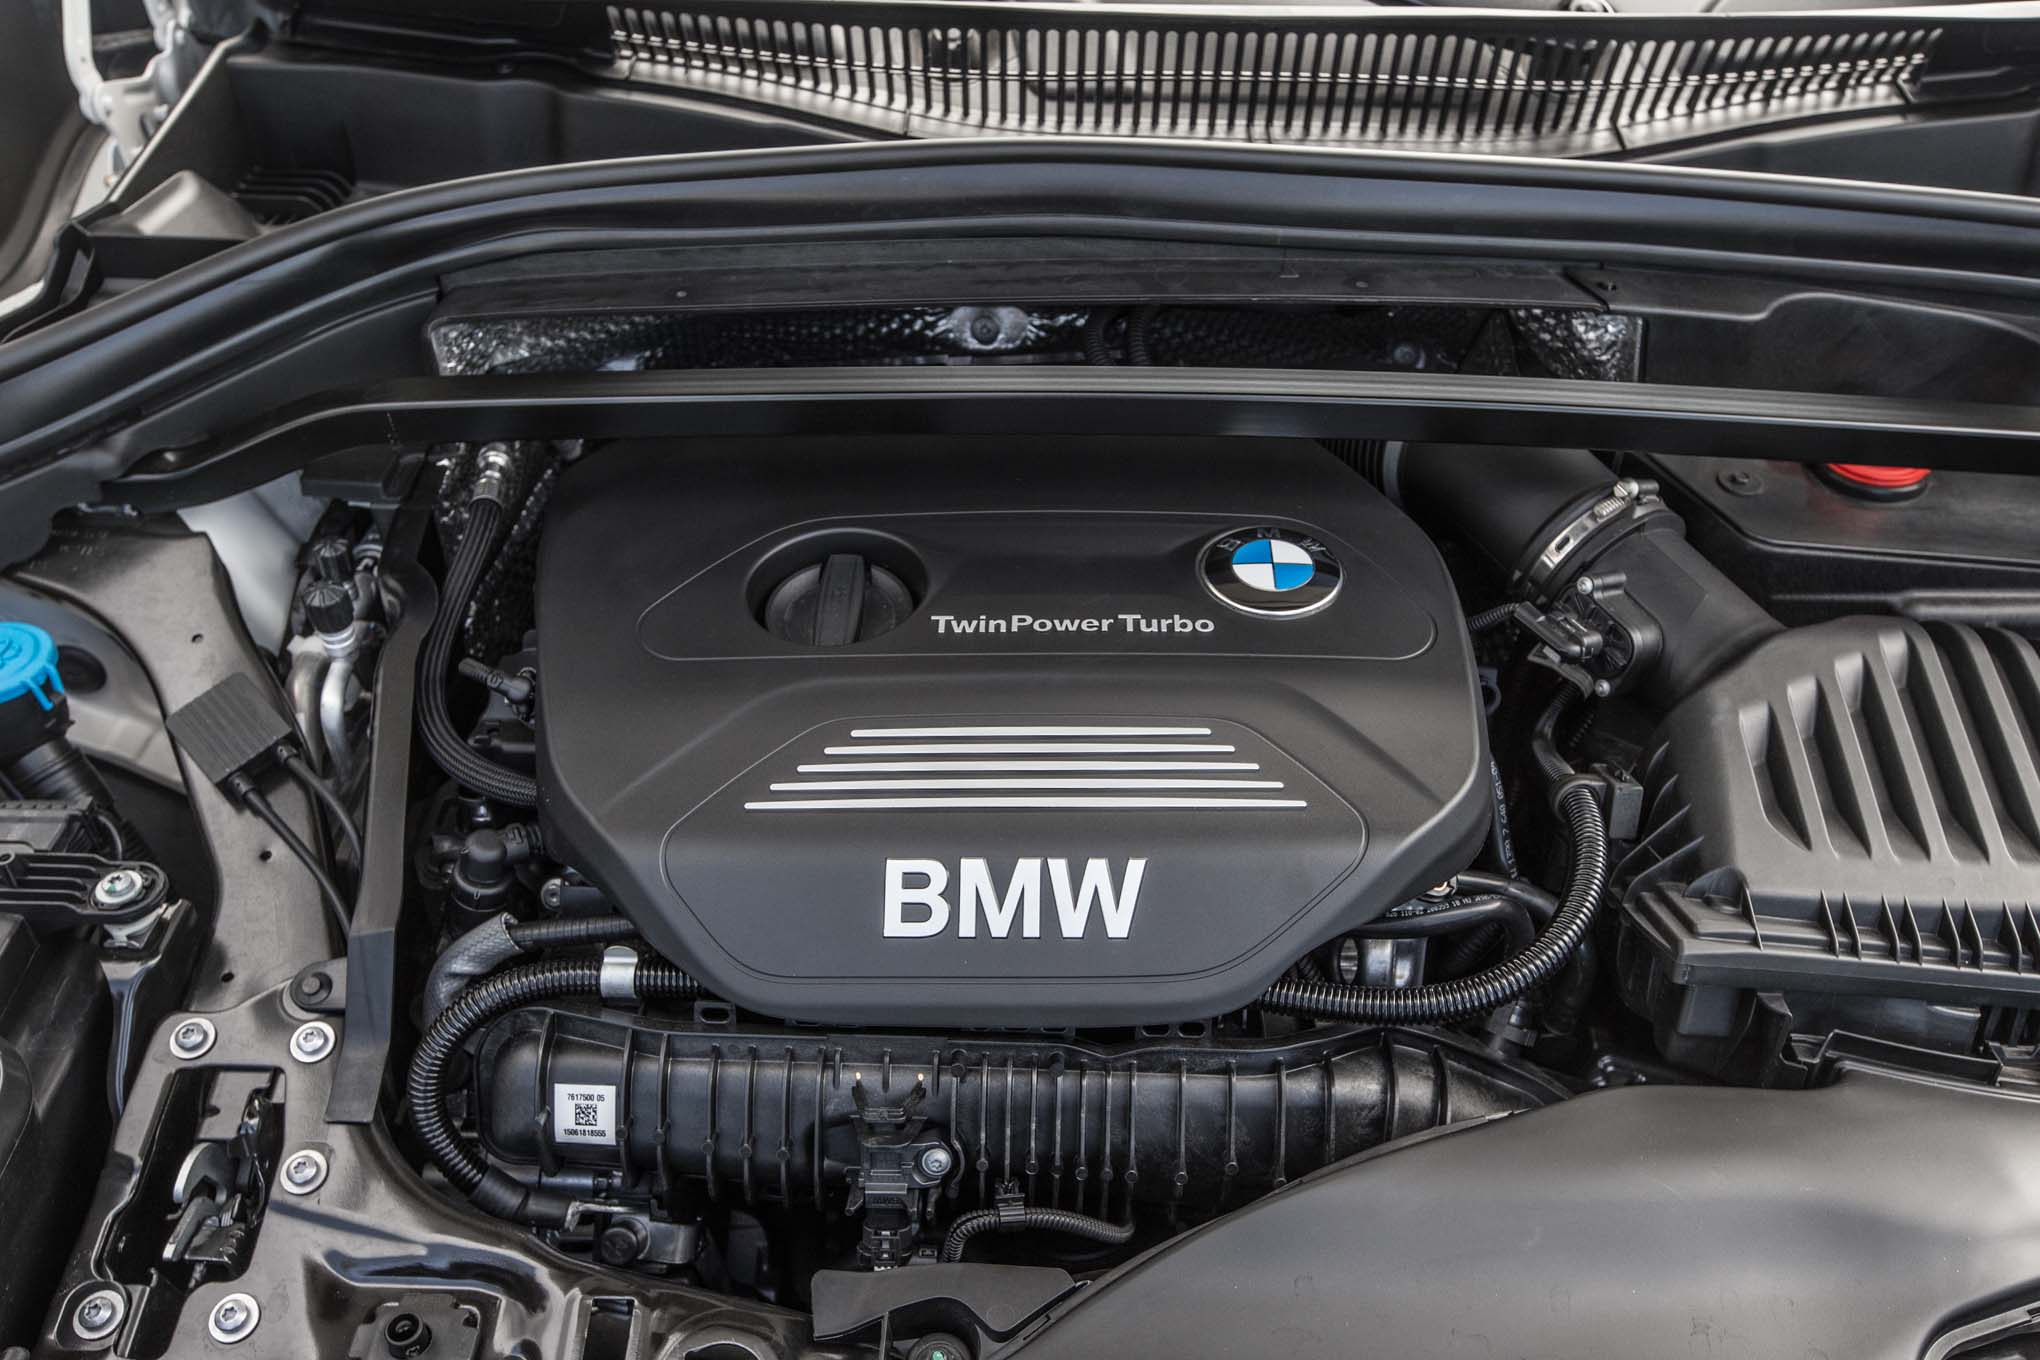 2017 BMW X1 XDrive28i View Engine (Photo 23 of 23)